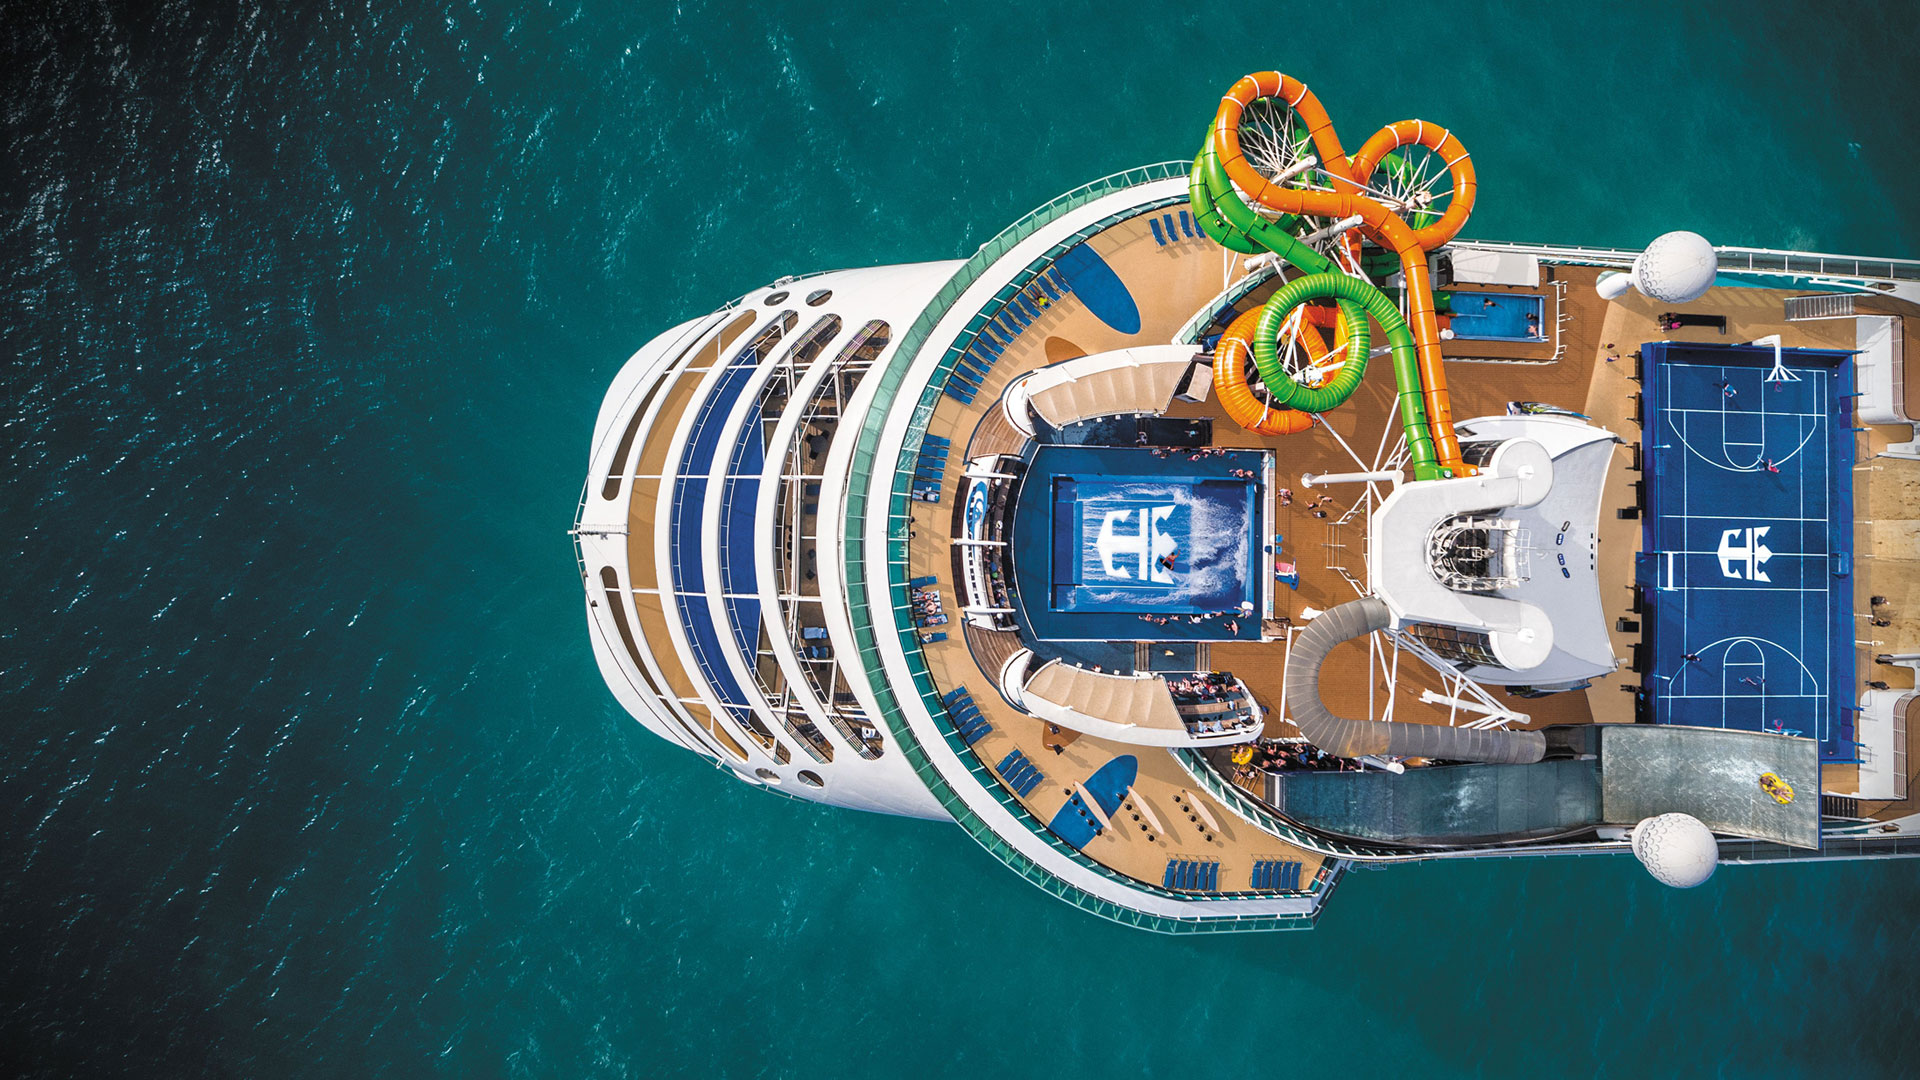 Aerial view of Liberty of the Seas